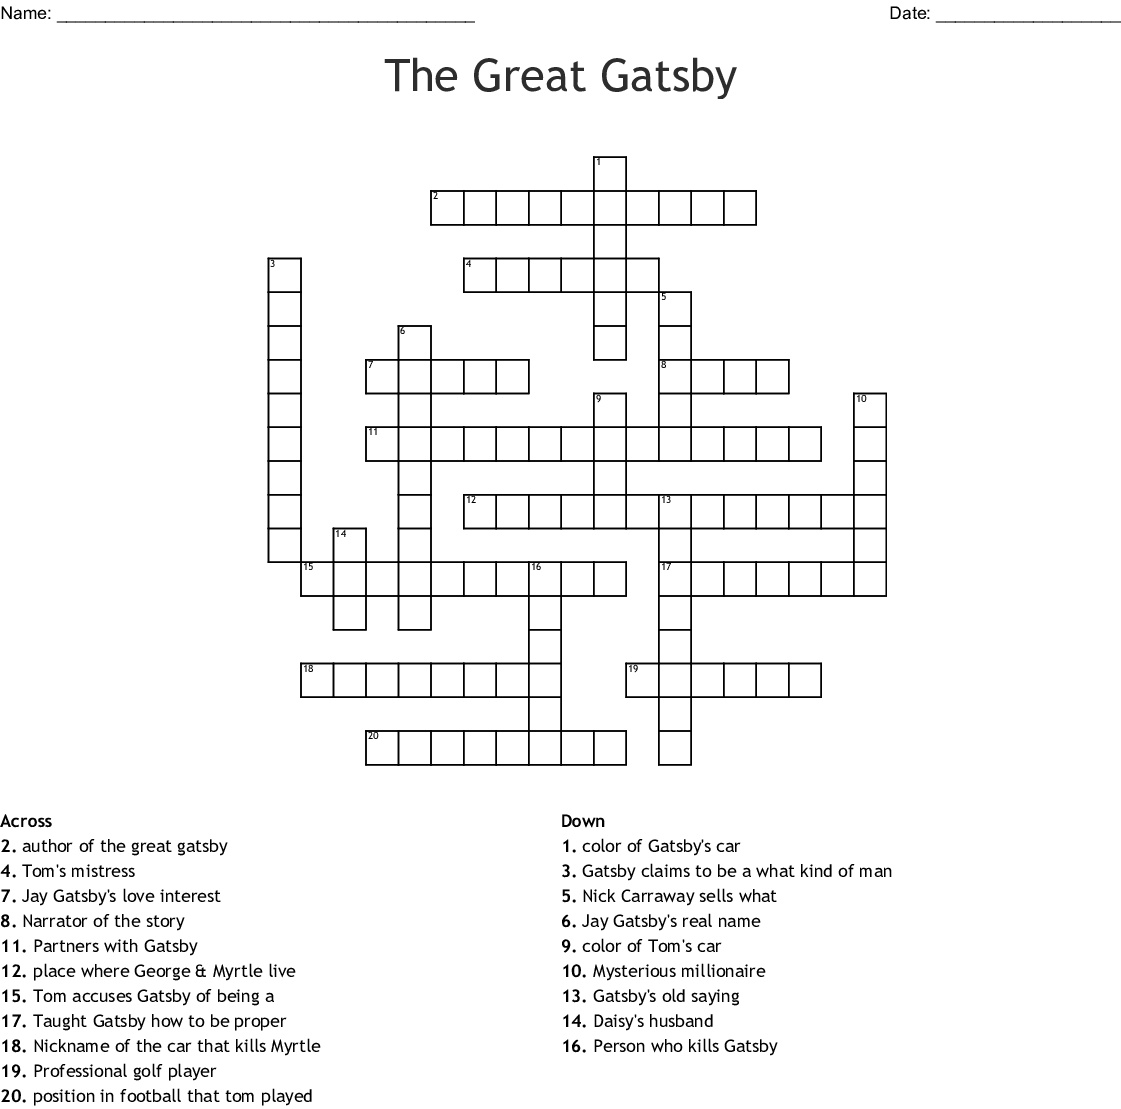 The Great Gatsby Character Worksheet Answers